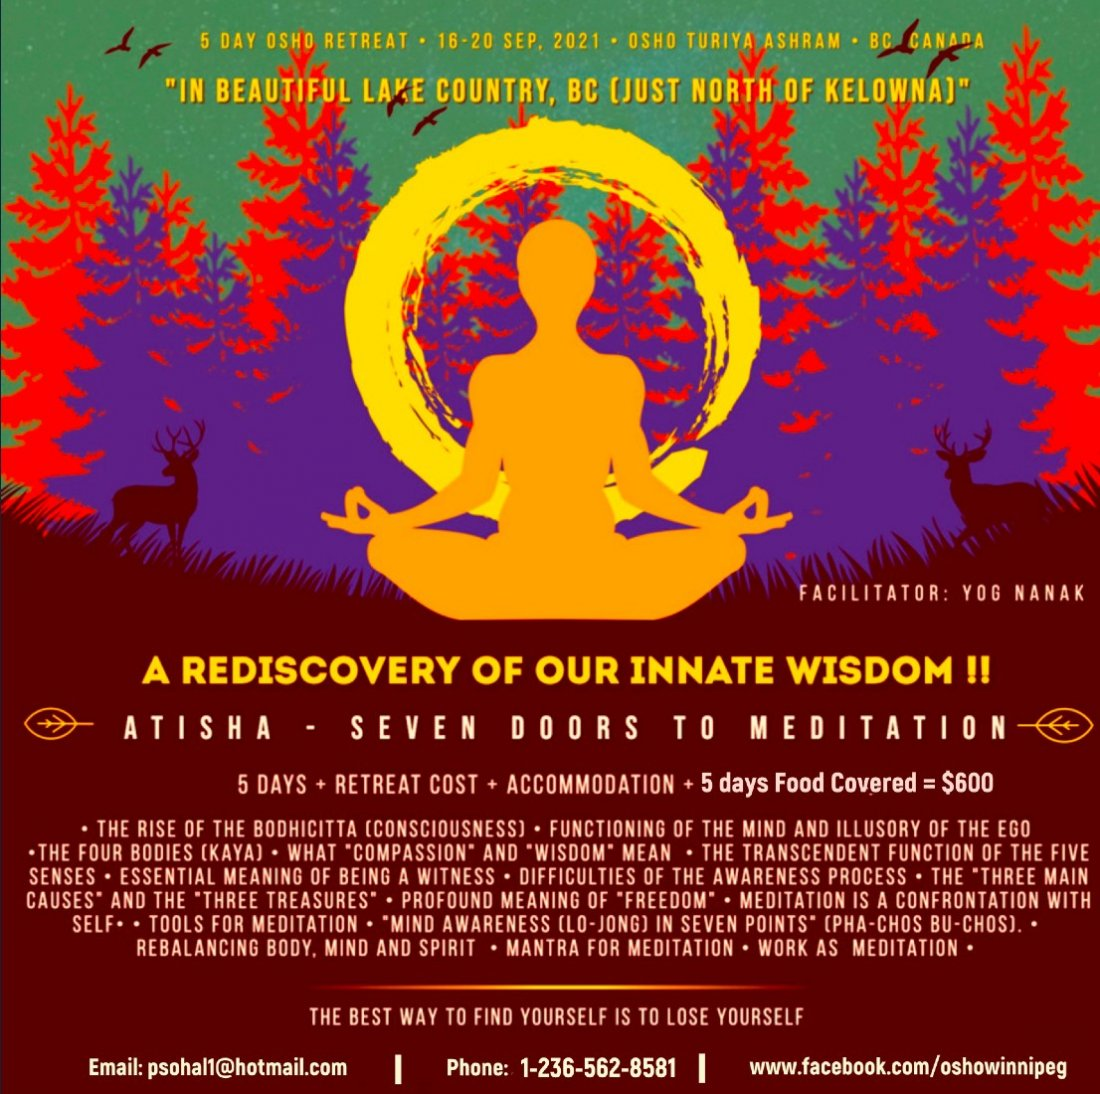 Atisha - Seven Doors to Meditation, 16 September | Event in Lake Country | AllEvents.in